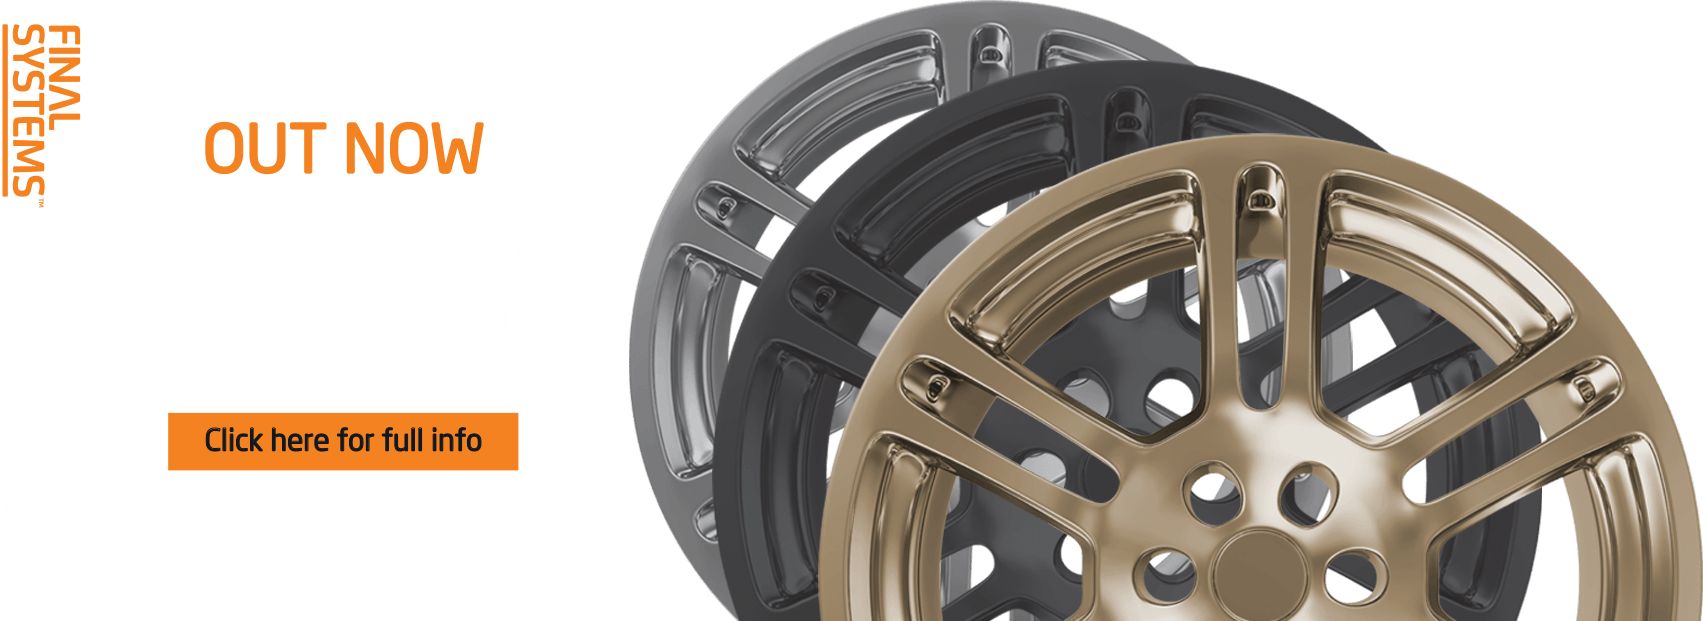 Alloy Wheel Colour System OUT NOW